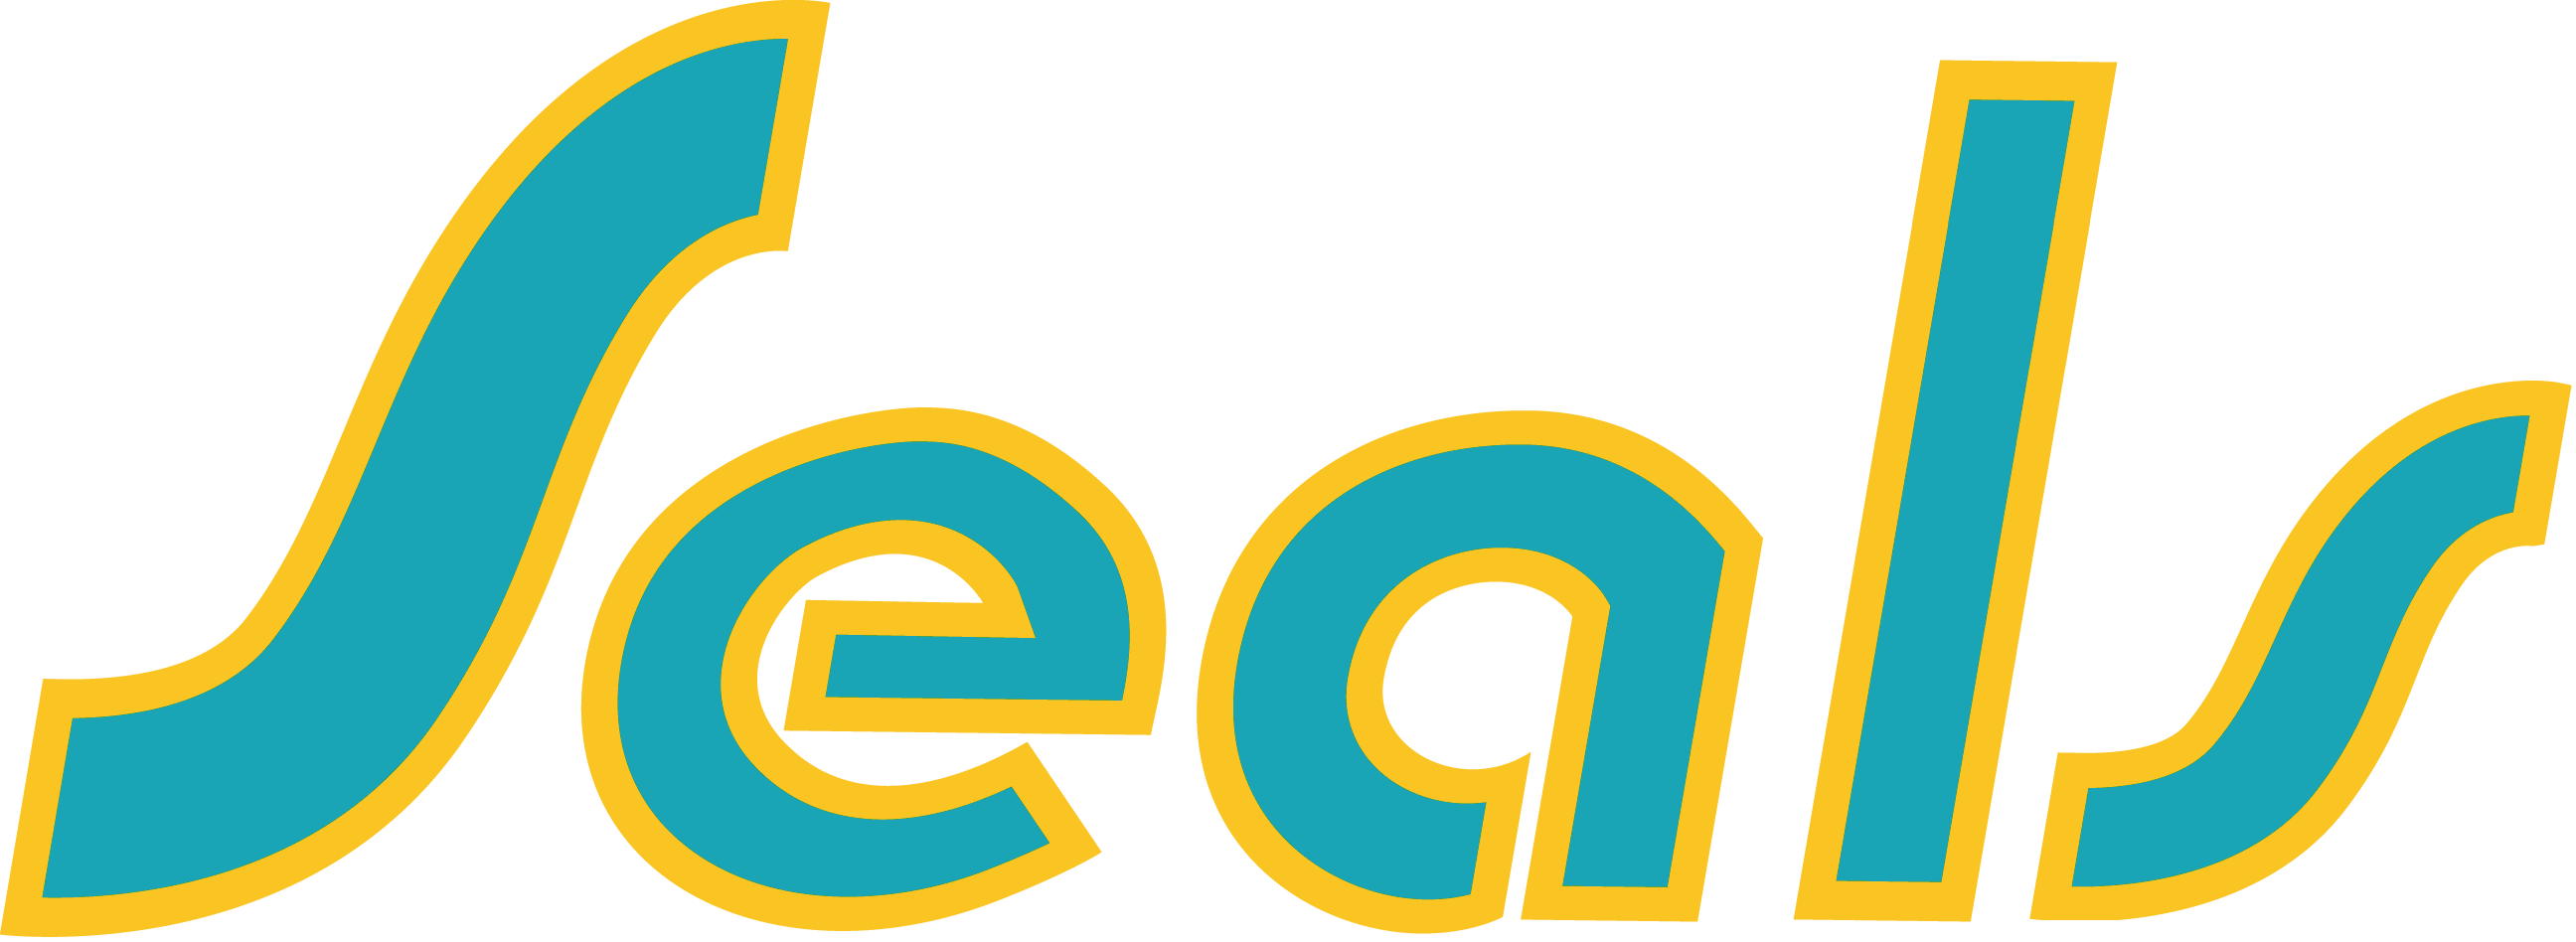 California Golden Seals Logo Primary Logo (1974/75-1975/76) - Seals in teal with yellow outline SportsLogos.Net